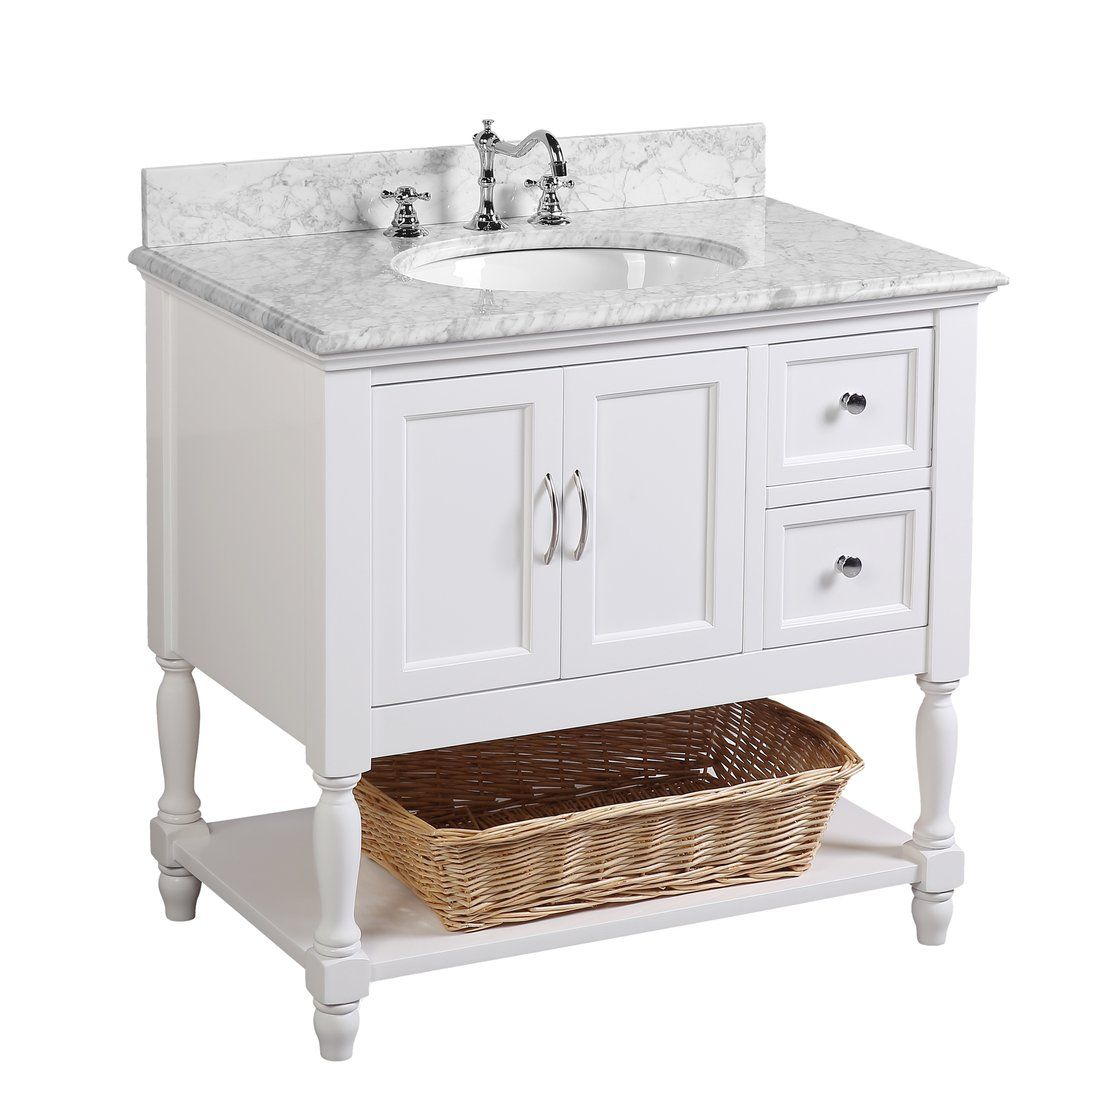 Beverly 36 Inch Vanity With Carrara Marble Top Single Bathroom Vanity Bathroom Vanity Vanity Set